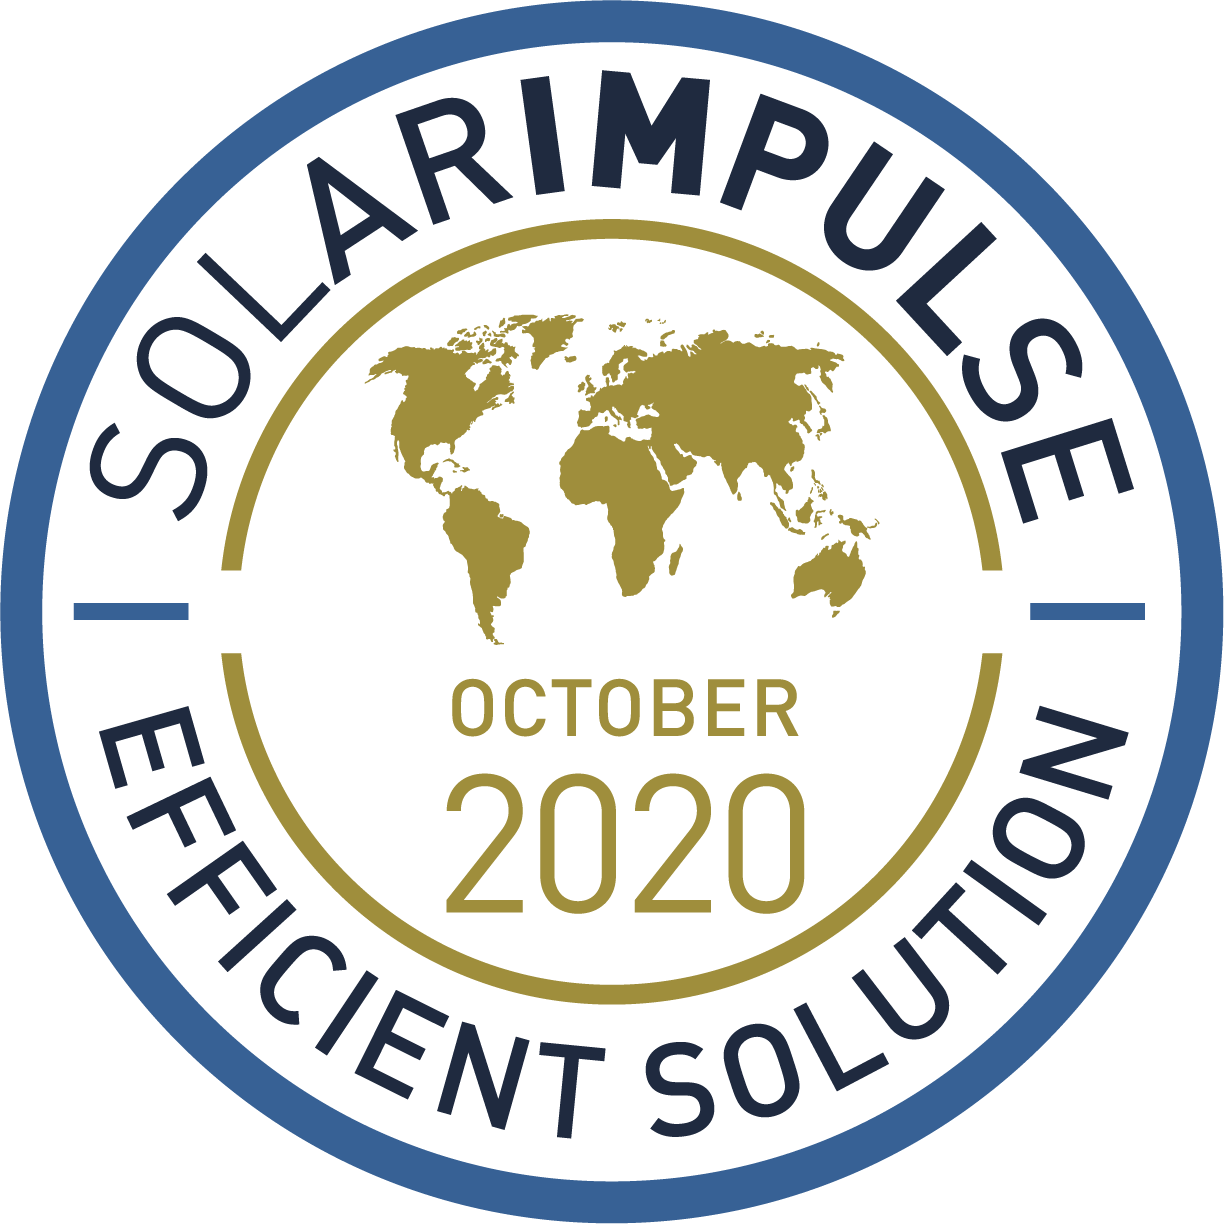 Label Solar Impulse Foundation - 10/2020